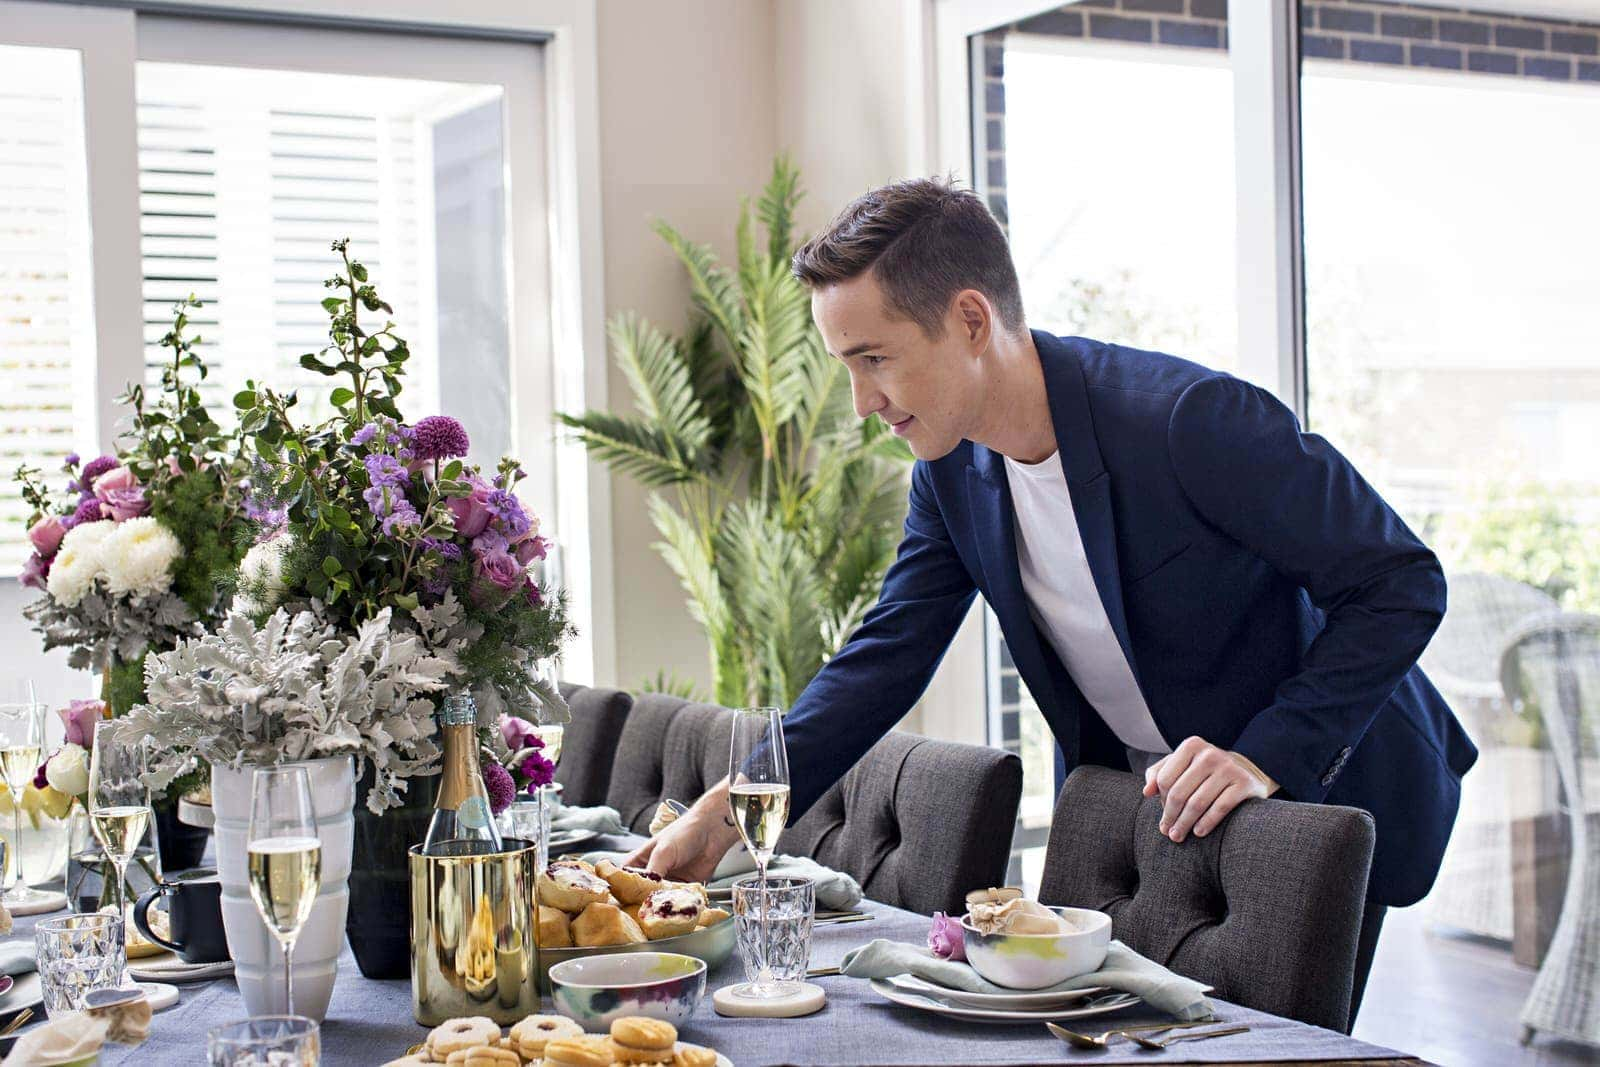 chris carroll from tlc interiors mothers day table styling